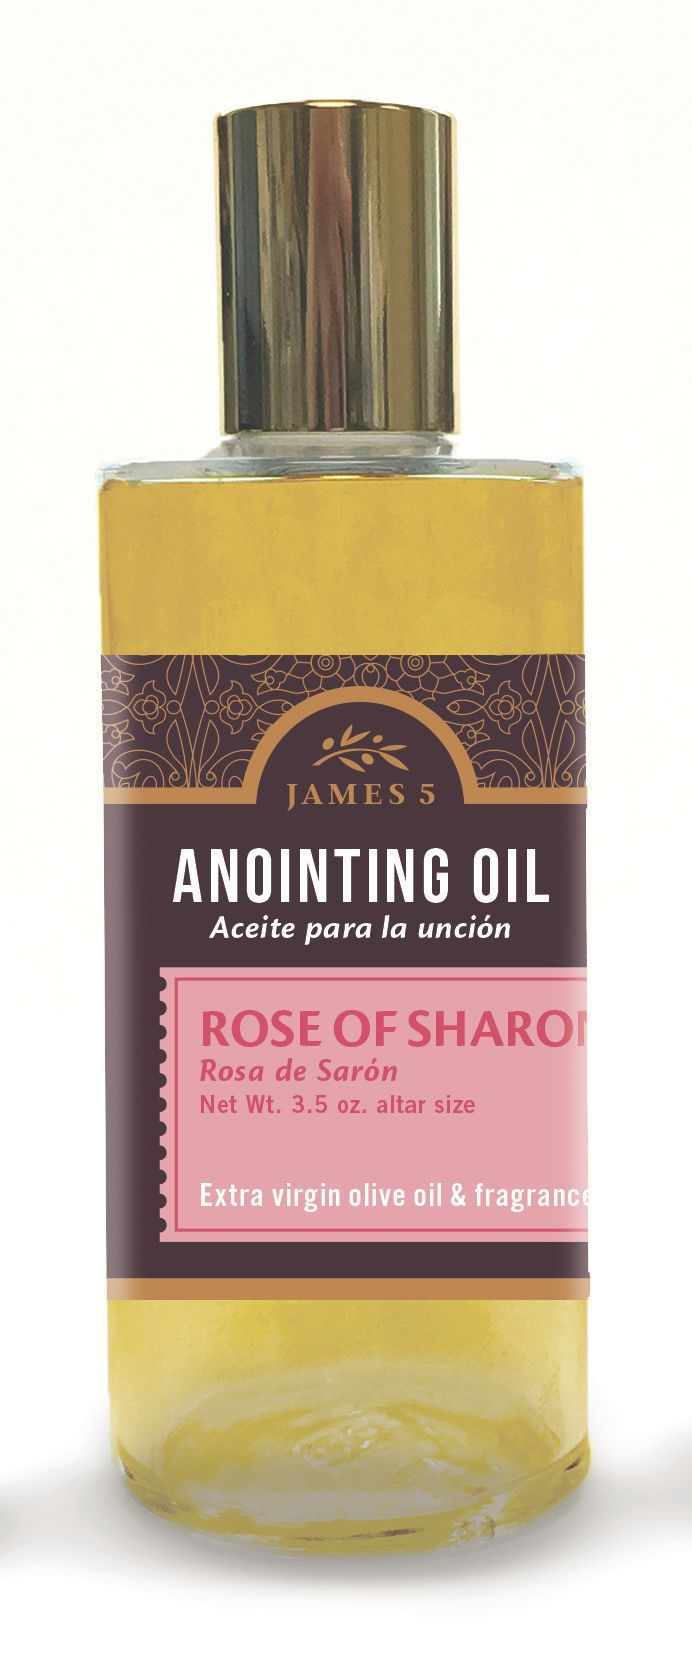 Anointing Oil – Rose of Sharon (3.5 oz) Altar Size